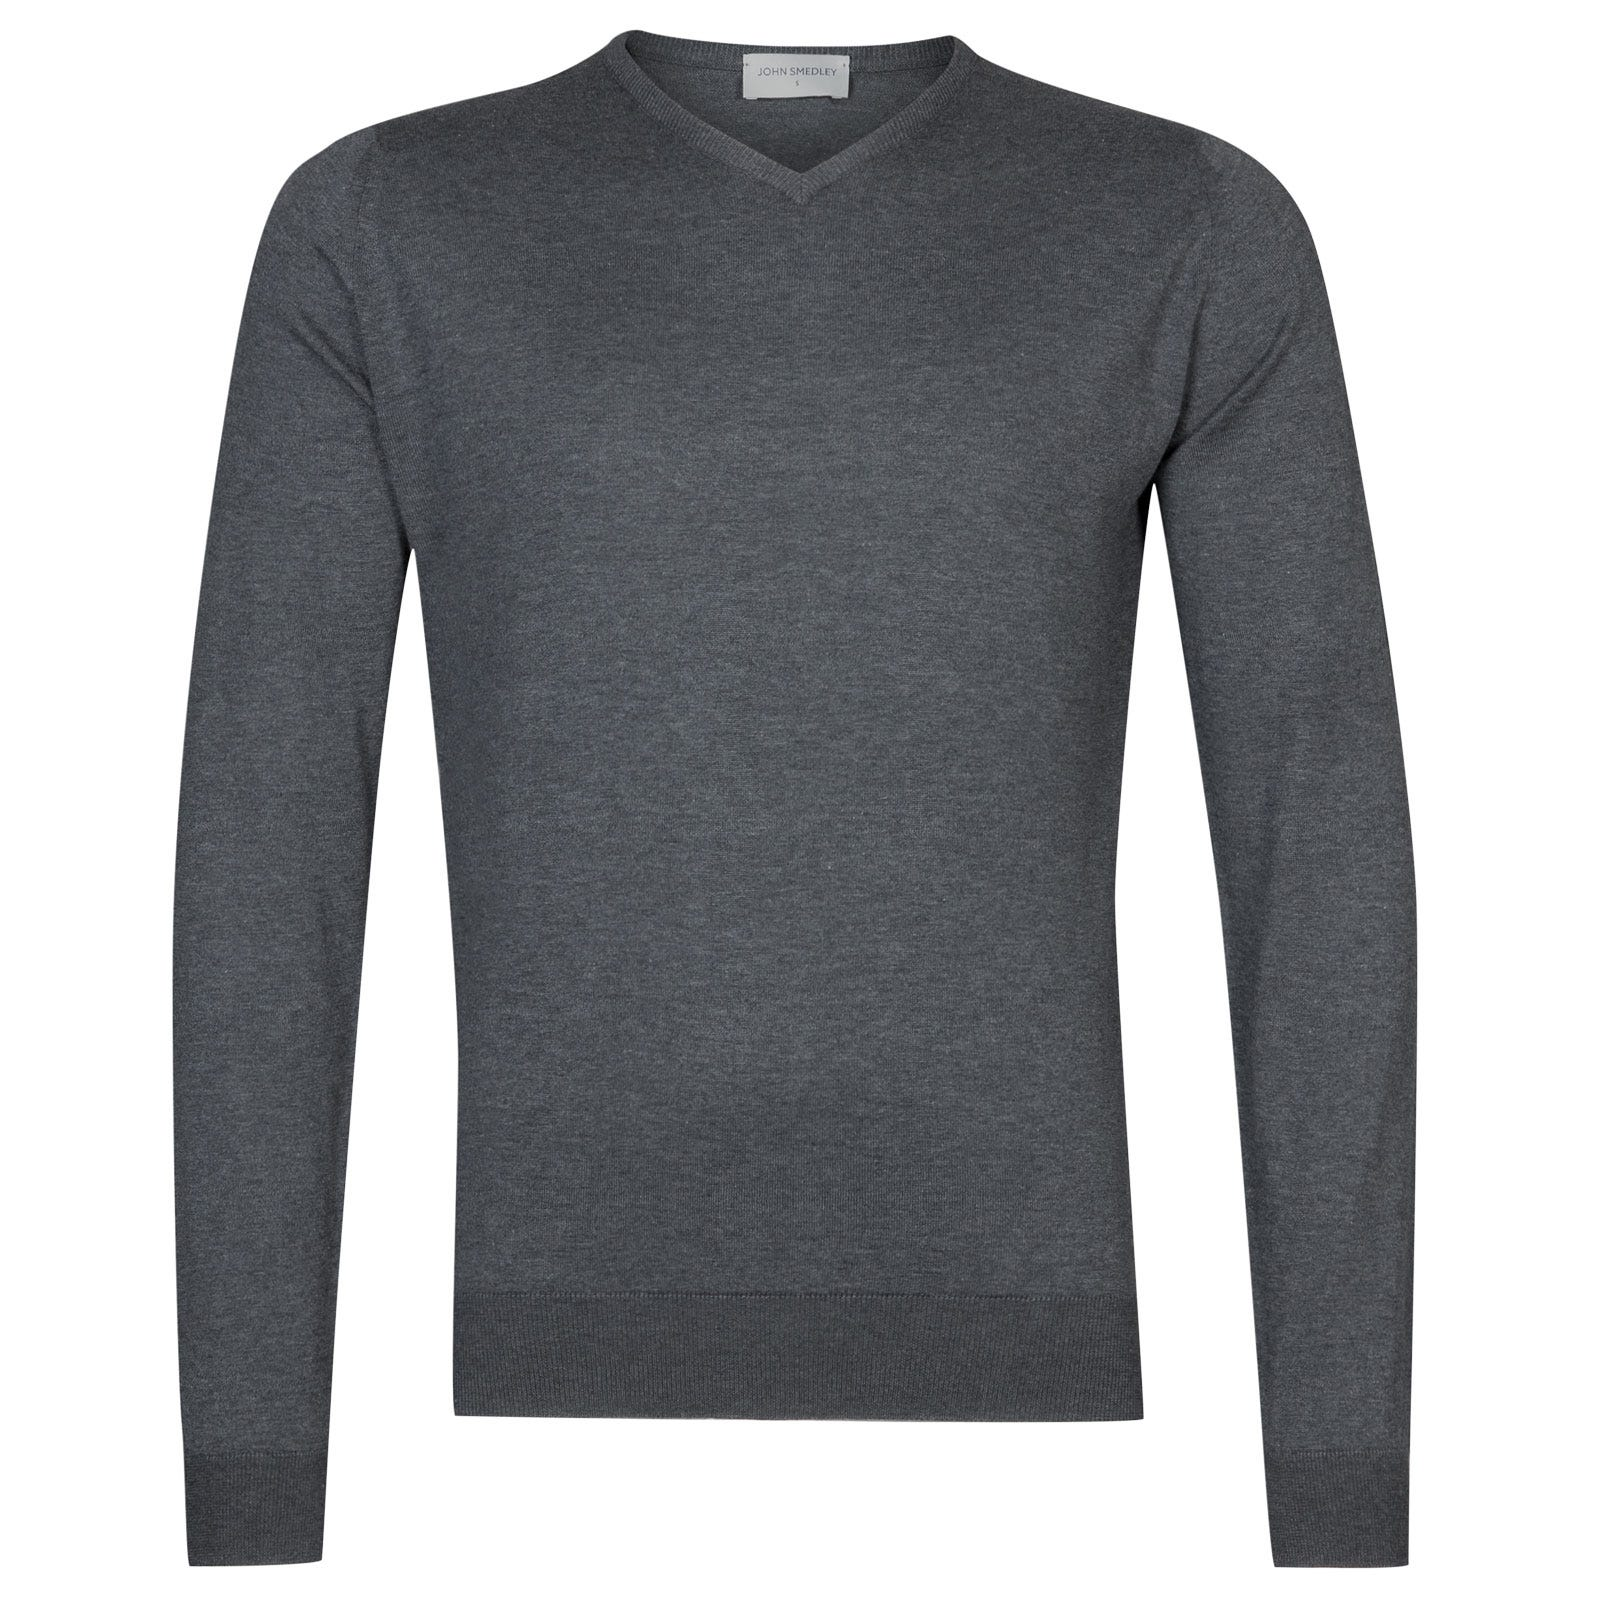 John Smedley Aydon Sea Island Cotton Pullover in Charcoal-S